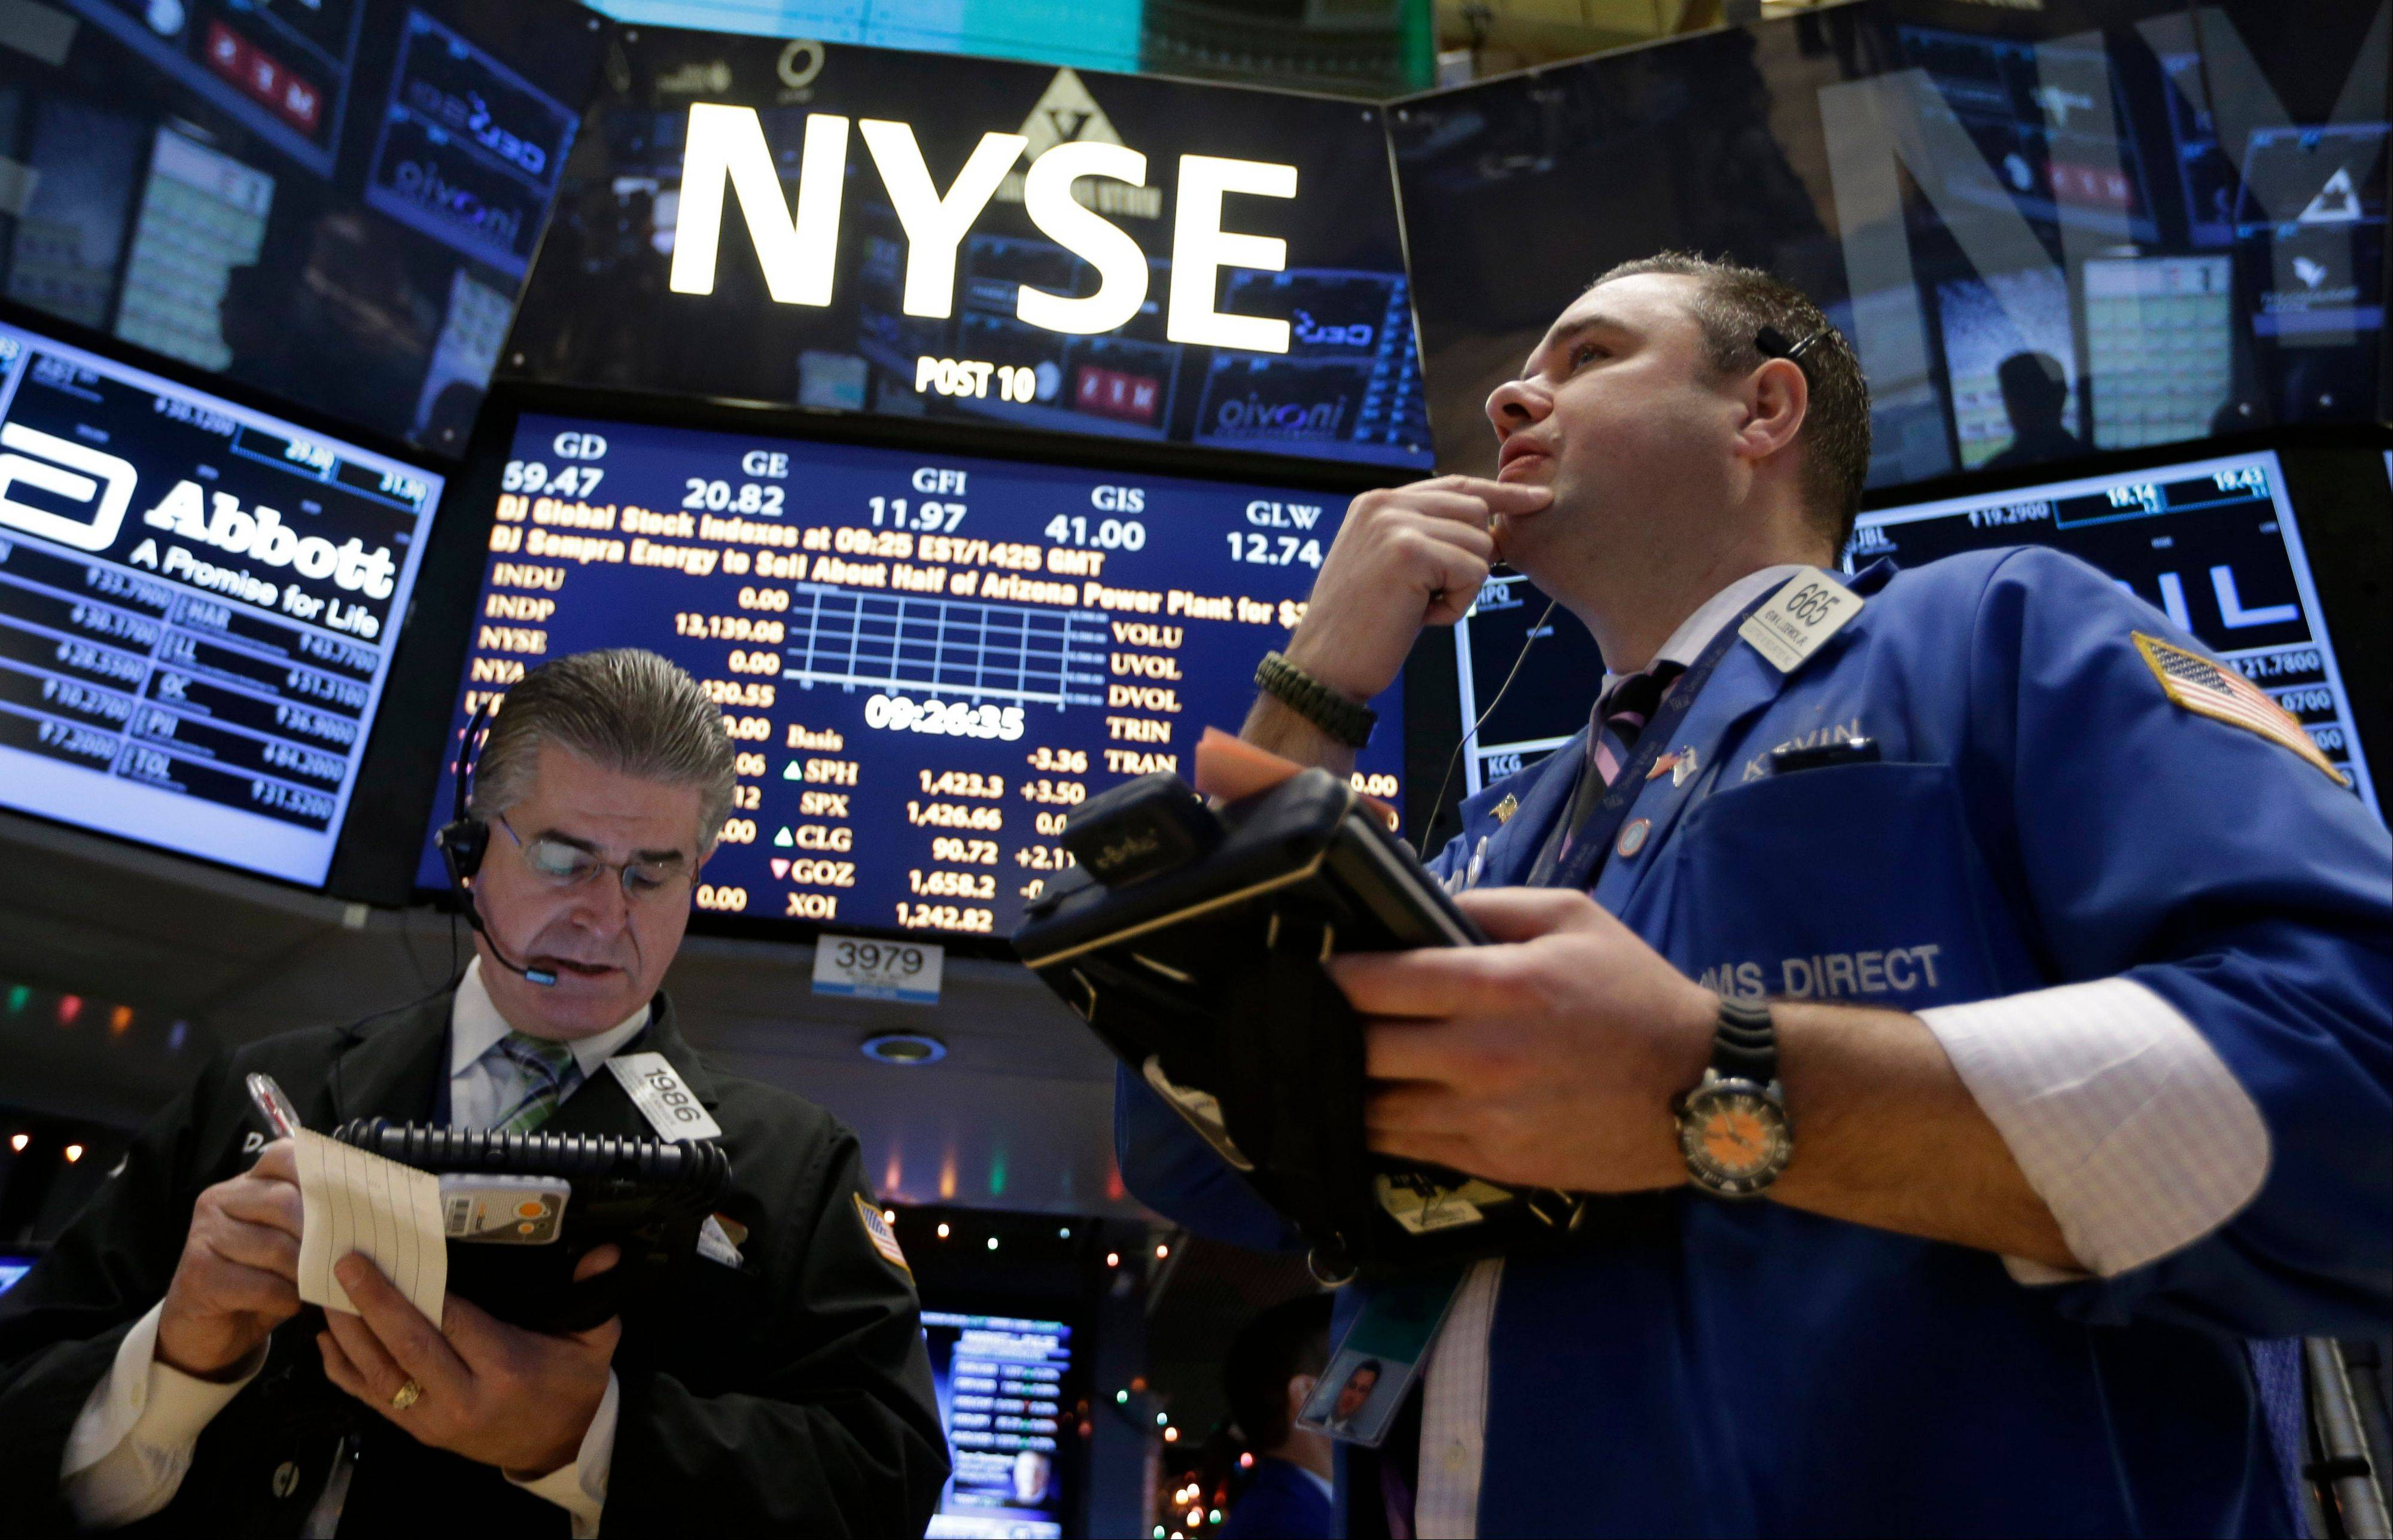 In this Wednesday, Dec. 26, 2012, photo, Daniel Kryger, left, and Kevin Lodewick Jr., right, work on the floor of the New York Stock Exchange in New York. Stocks are edging higher on Thursday as hopes dim that a budget deal will be reached before a deadline at the end of the year.